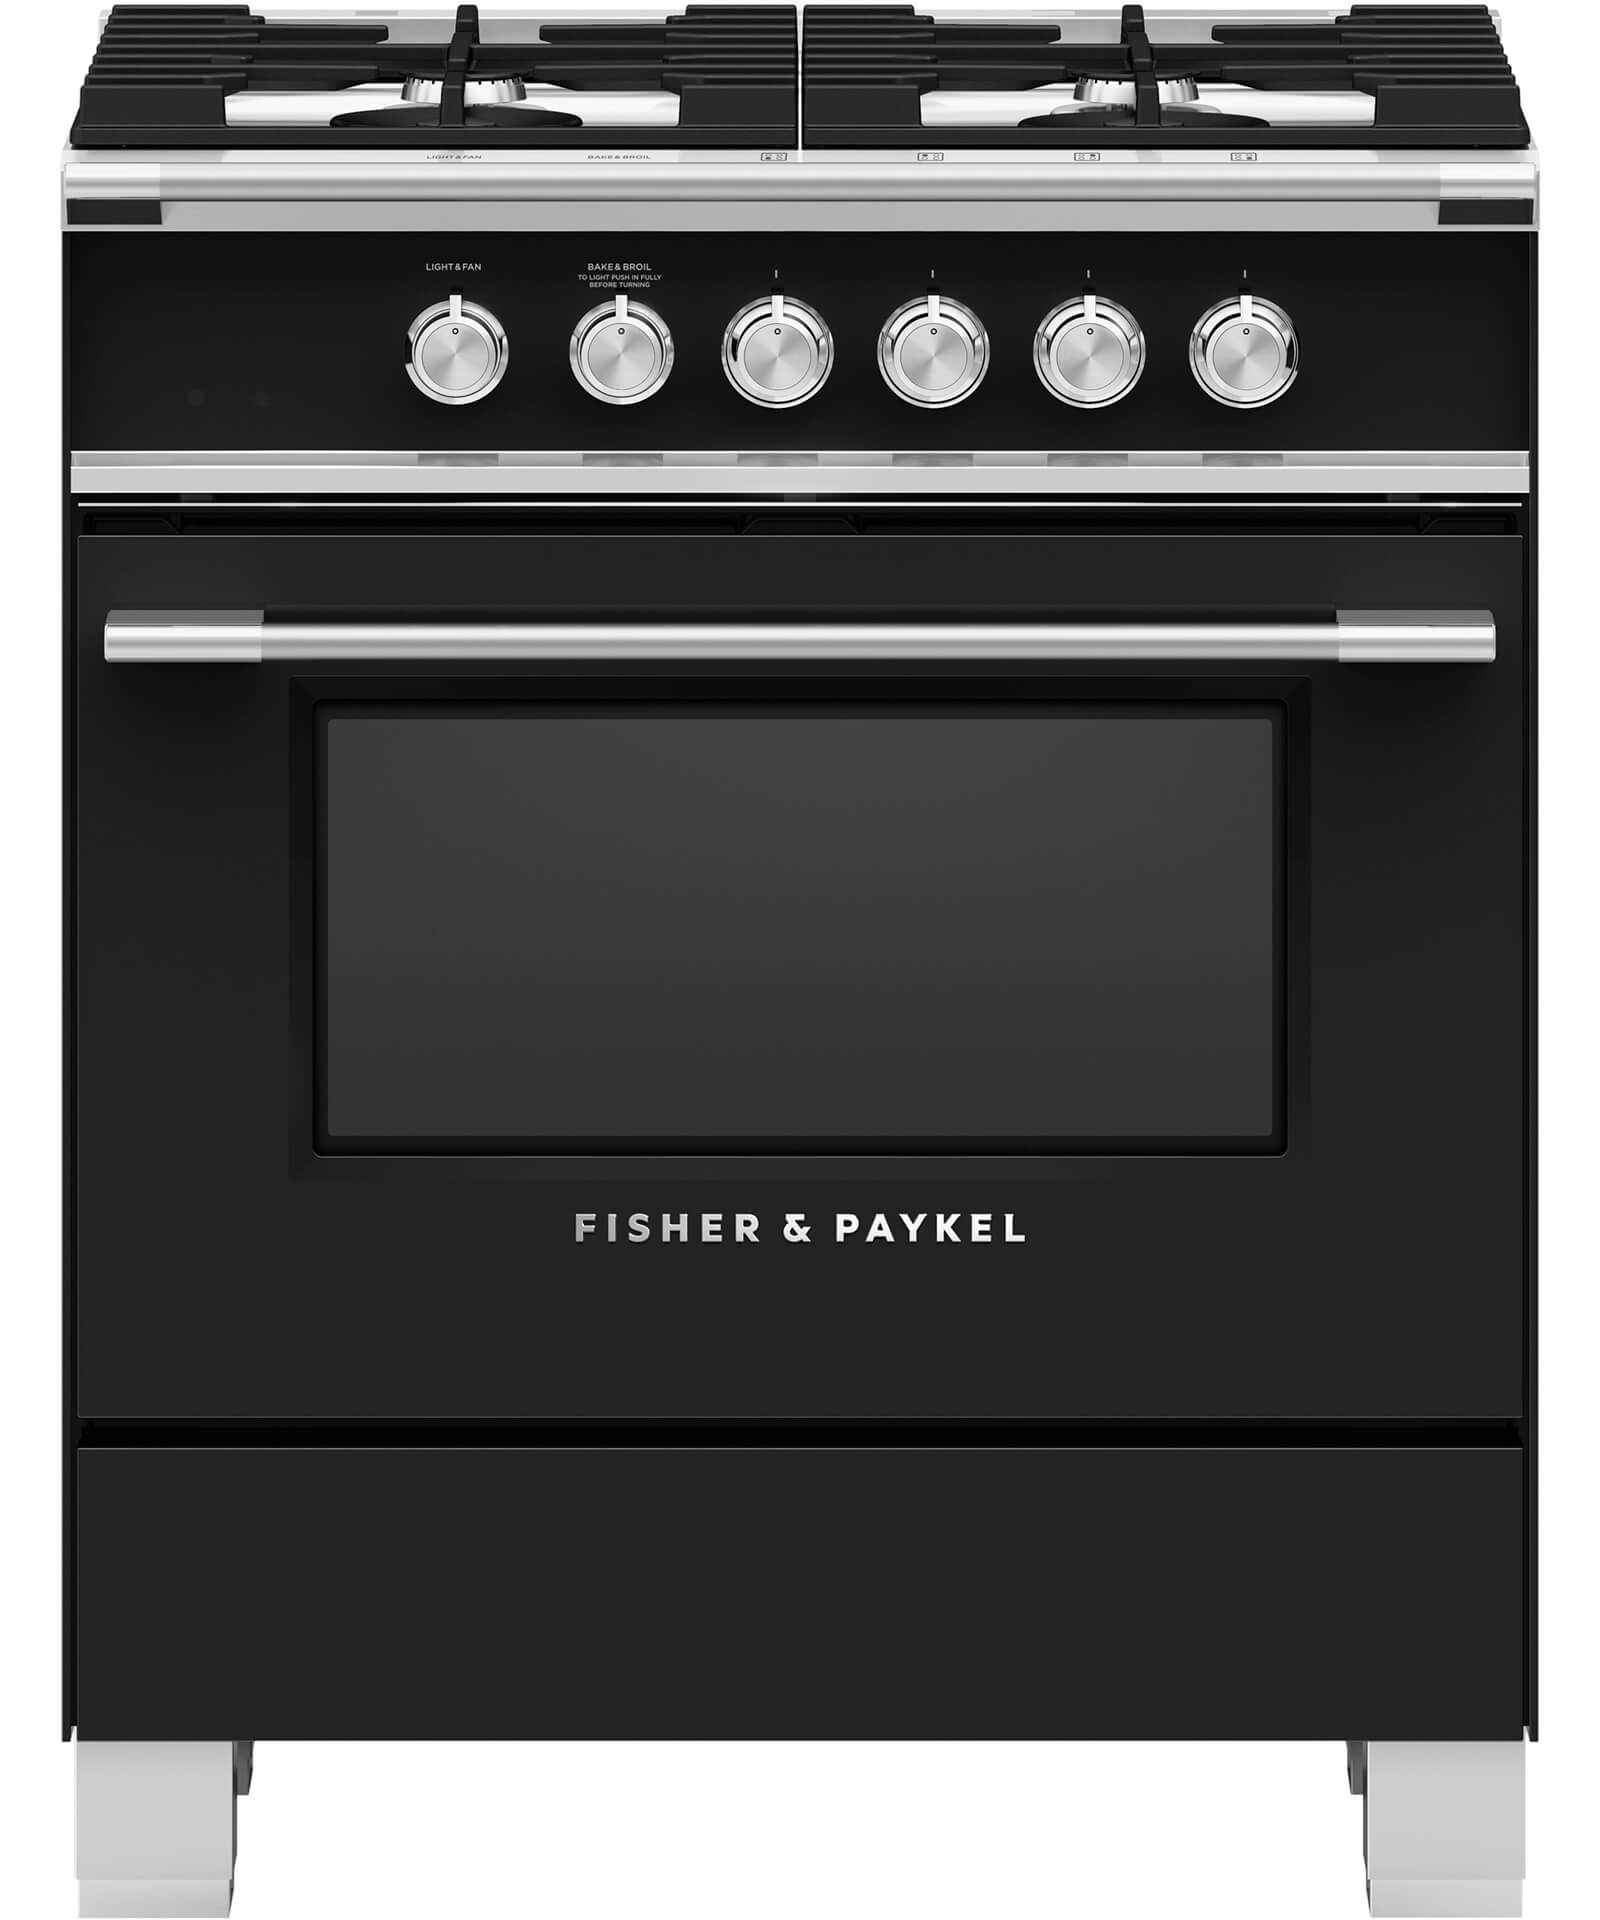 "OR30SCG4B1 - 30"" Gas Range - 81313"